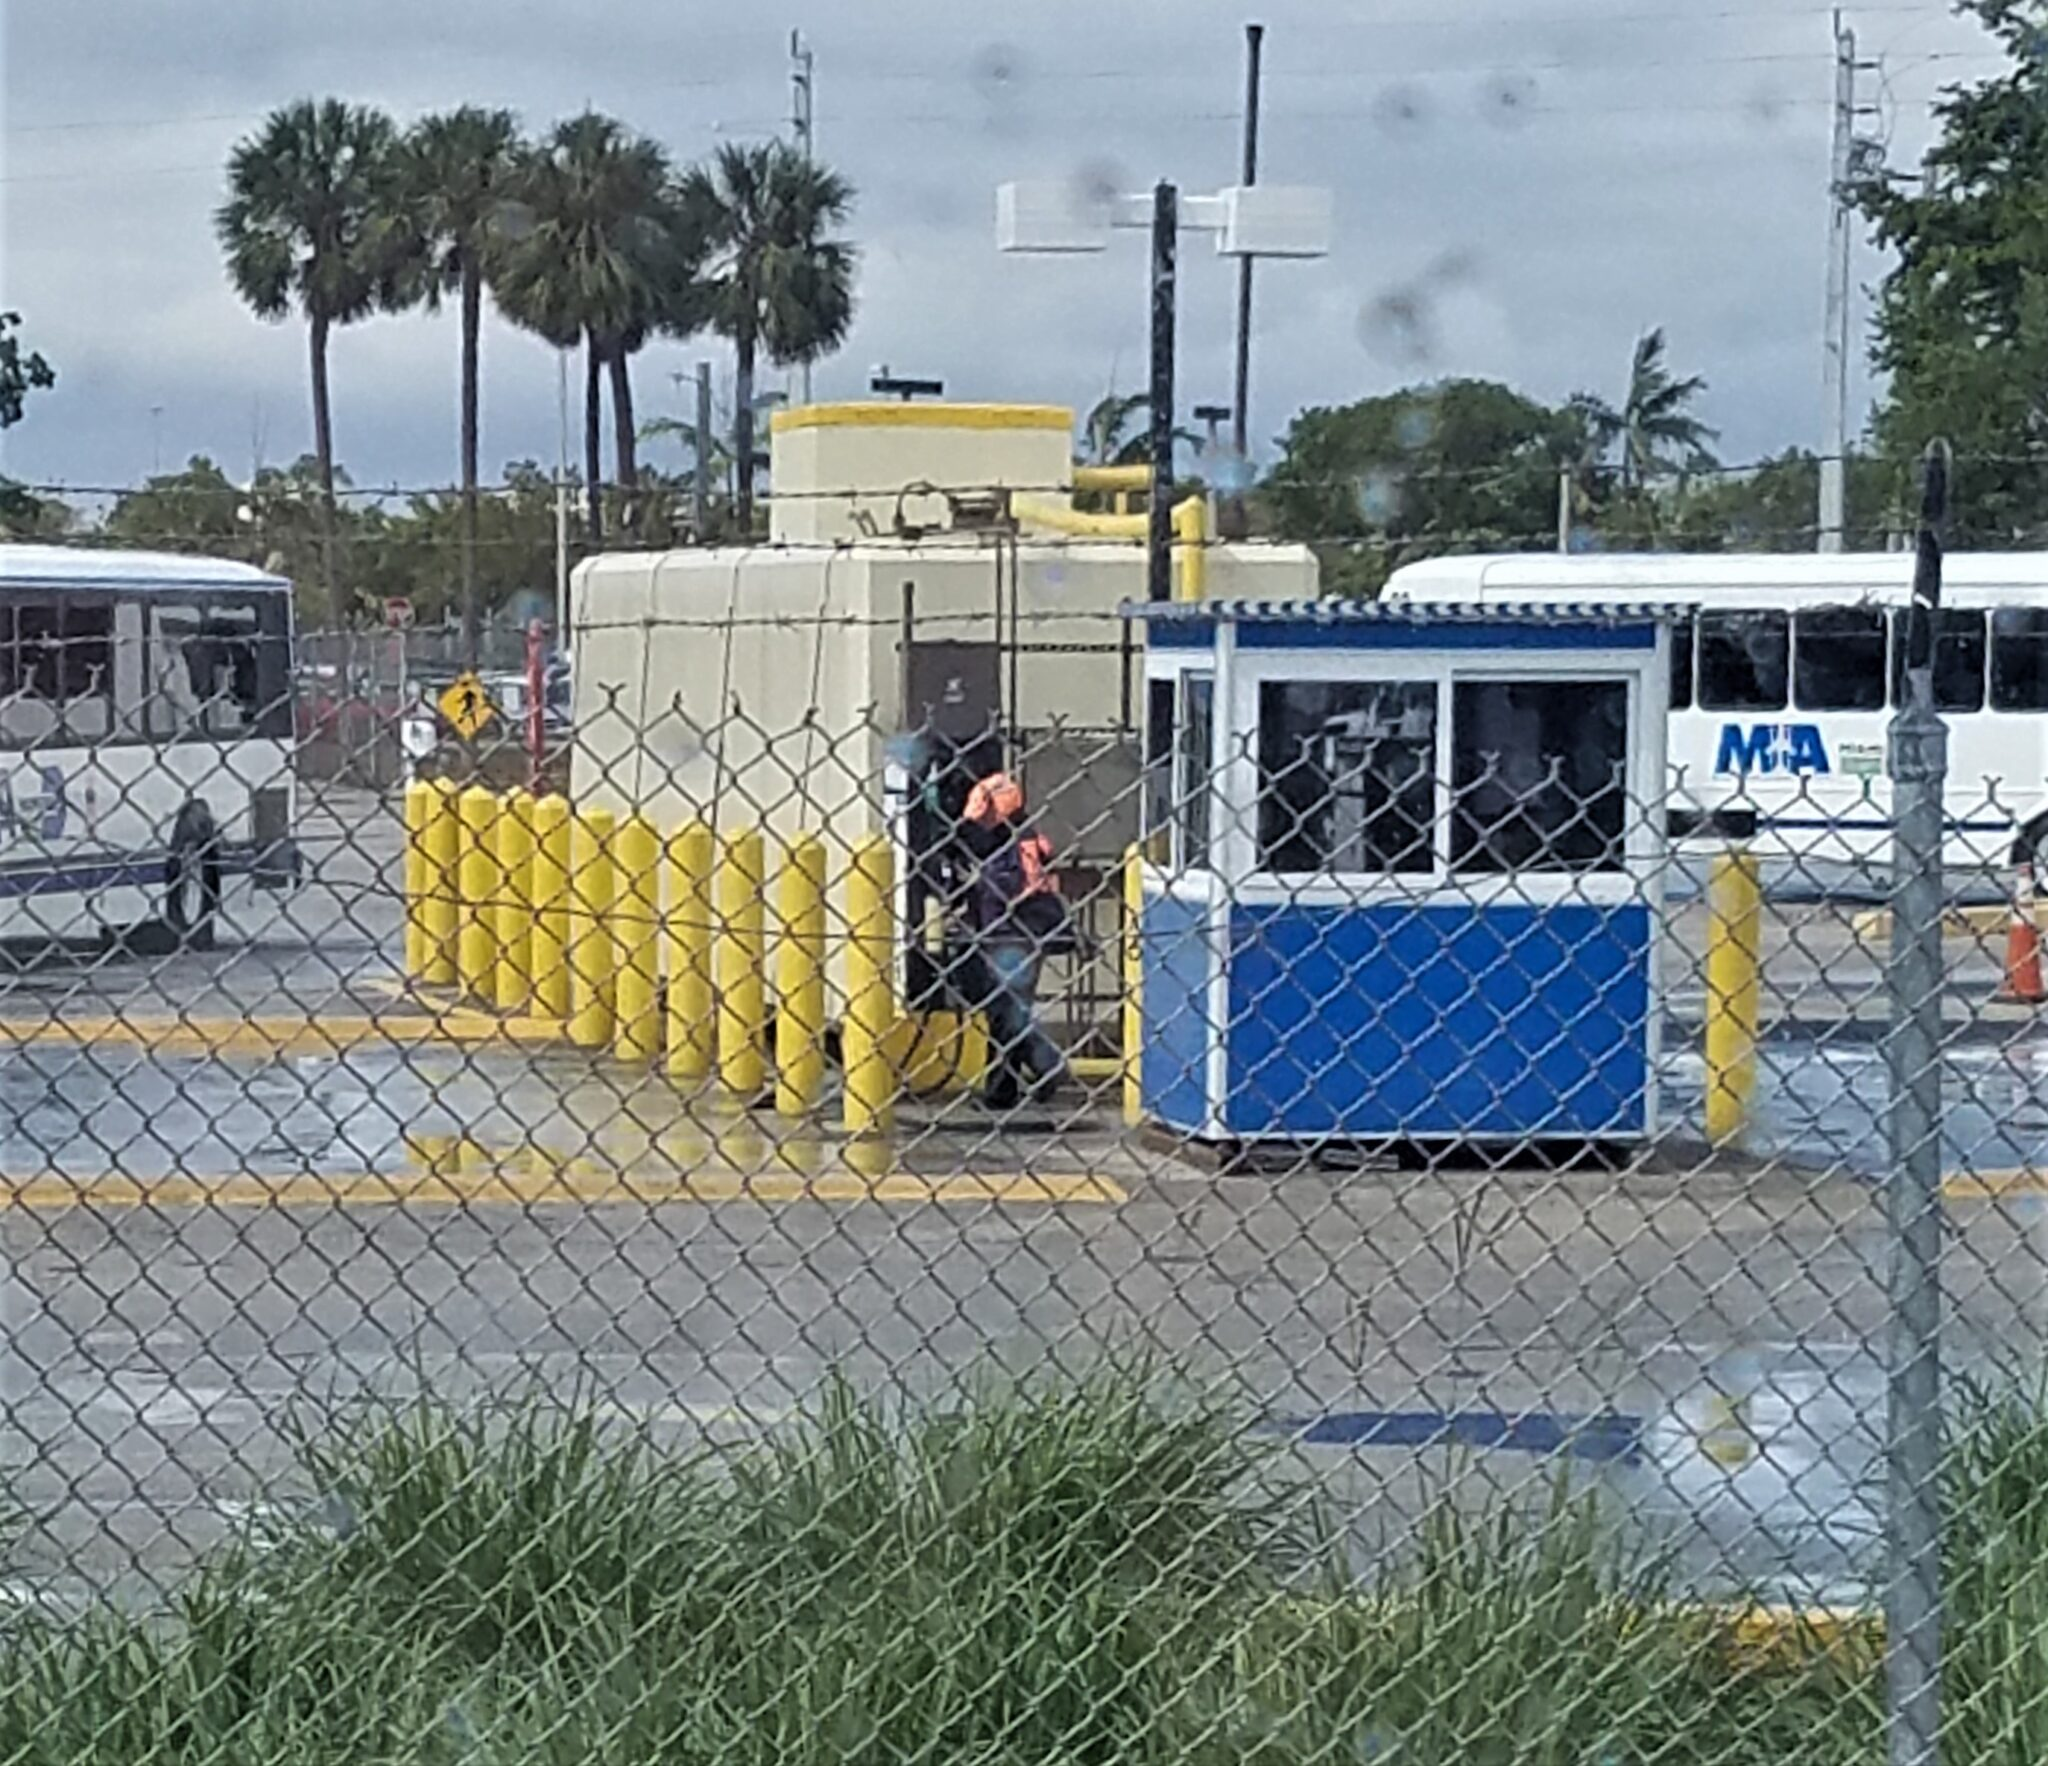 4x6 Security Guard Booth in Miami at Miami International Airport with Tinted Windows, Swing Door, Breaker Panel Box